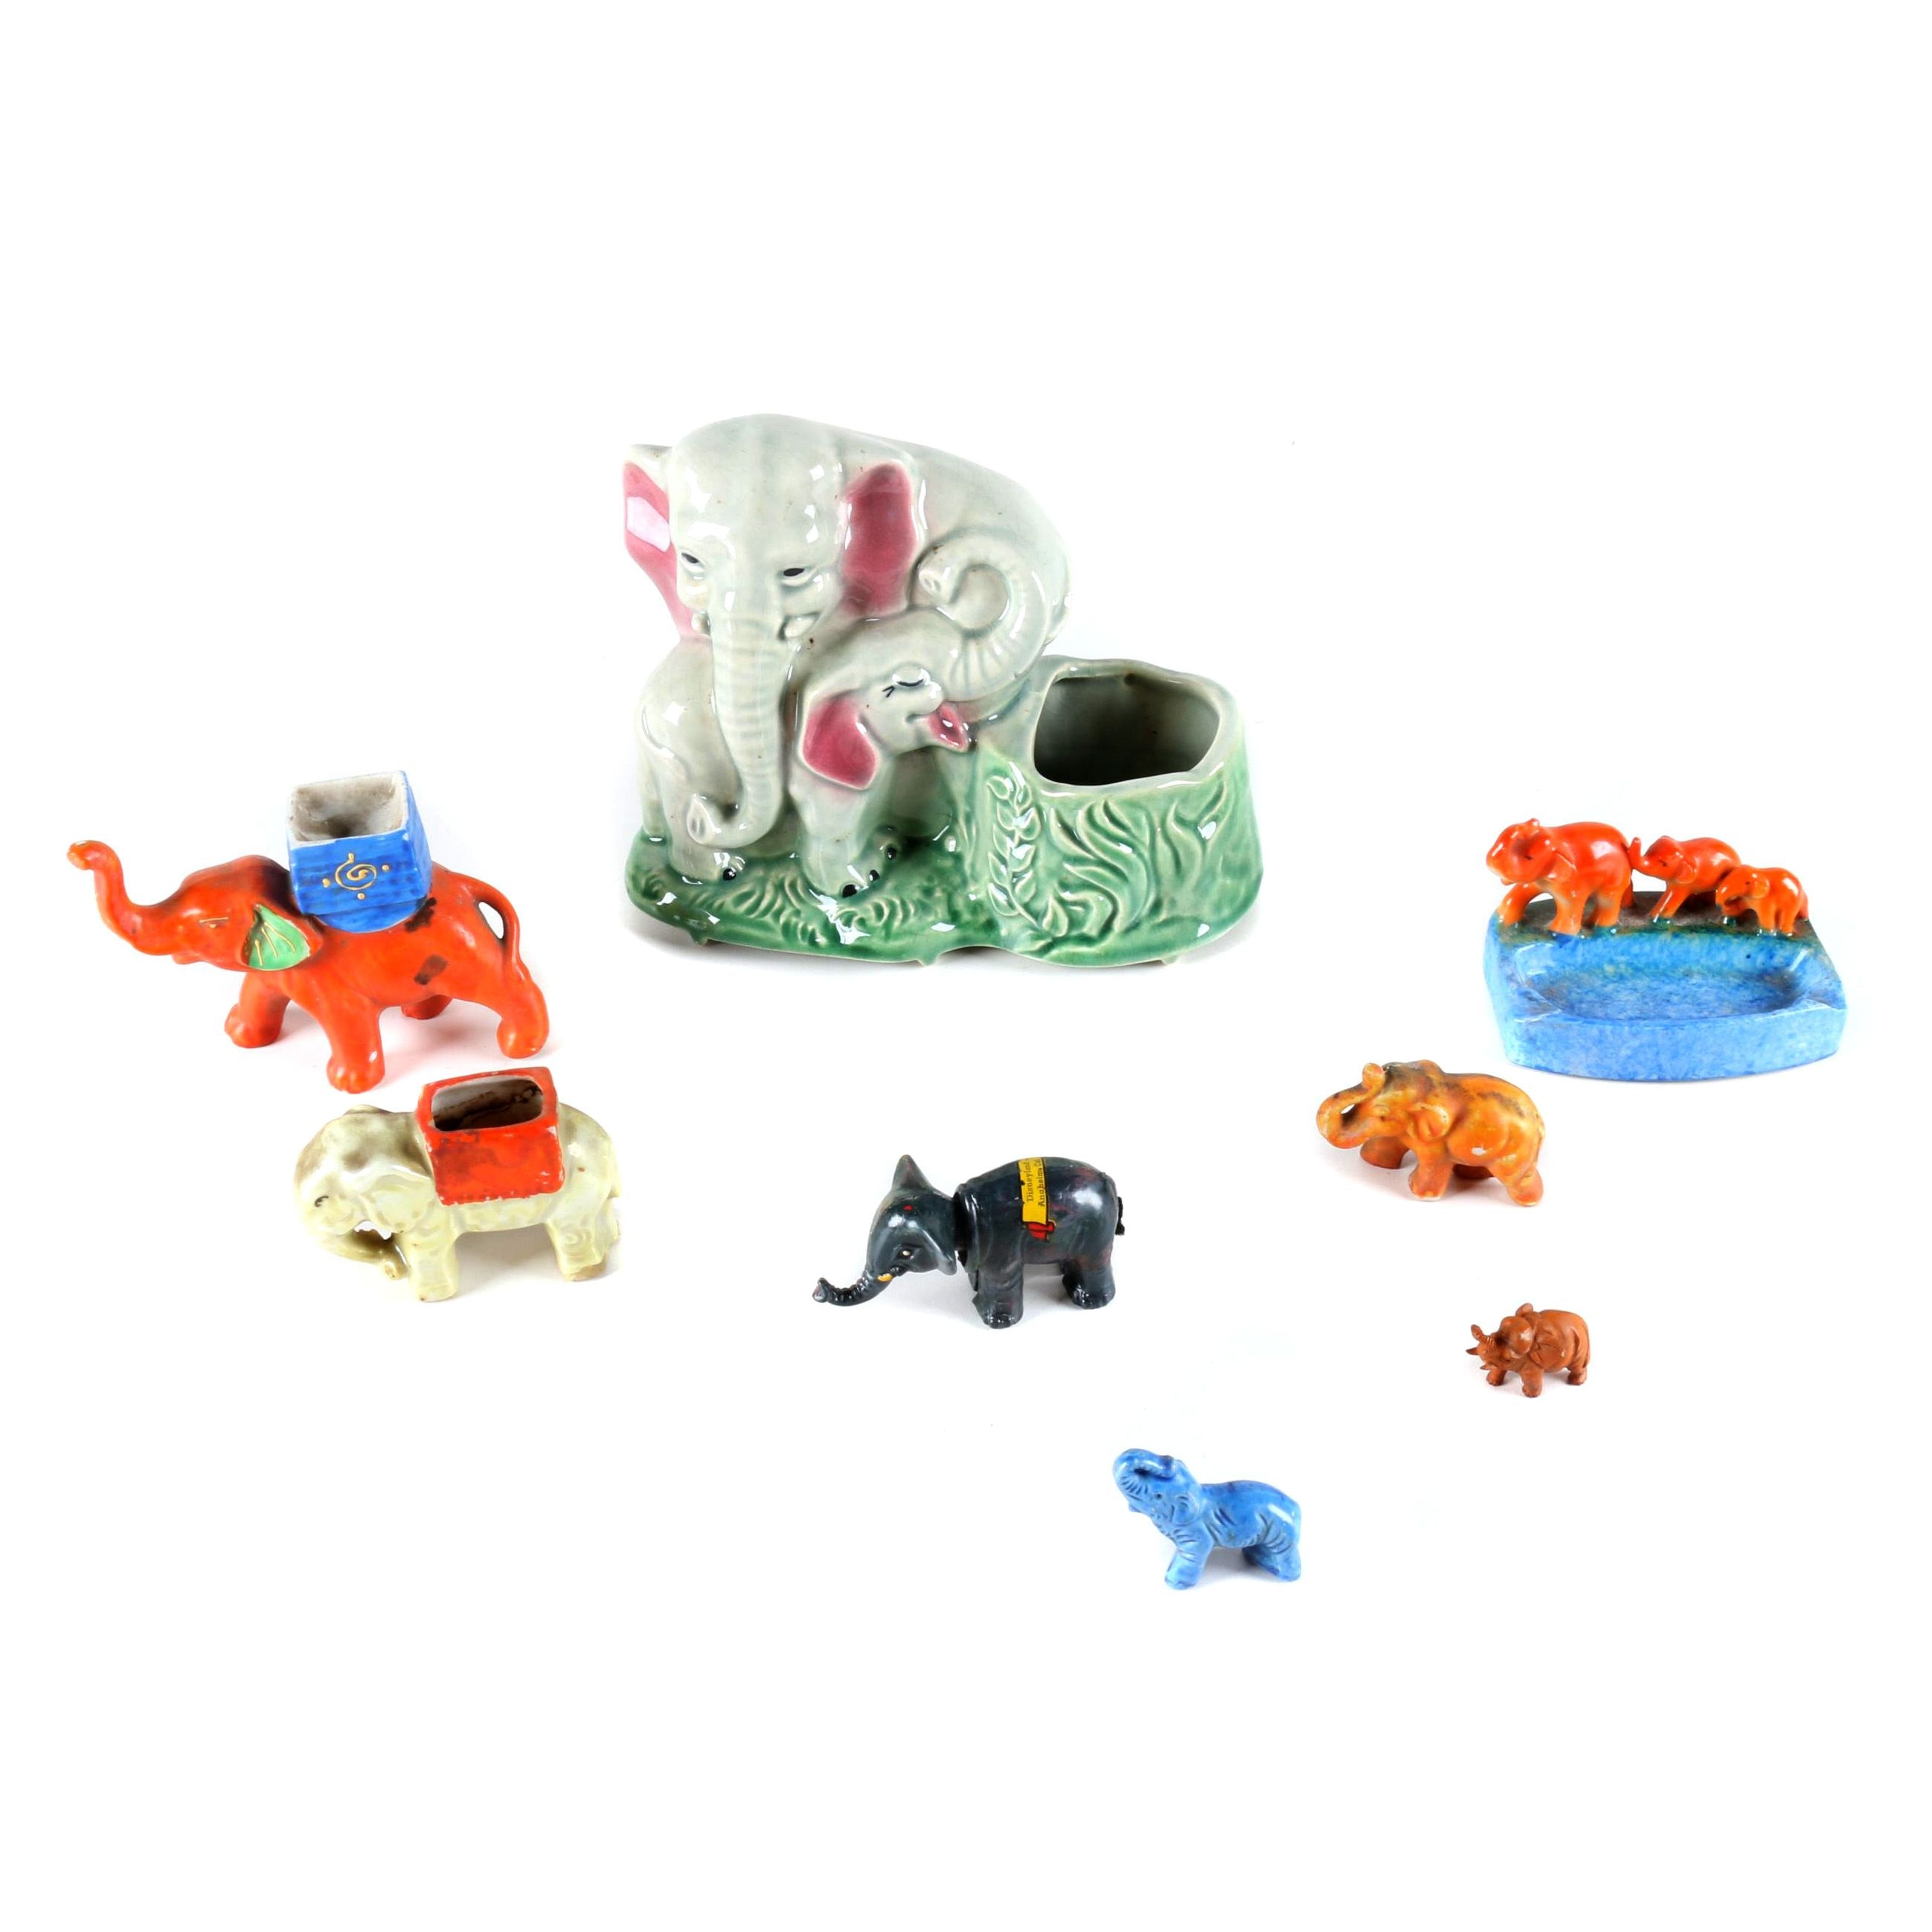 Ceramic Elephant Figurines